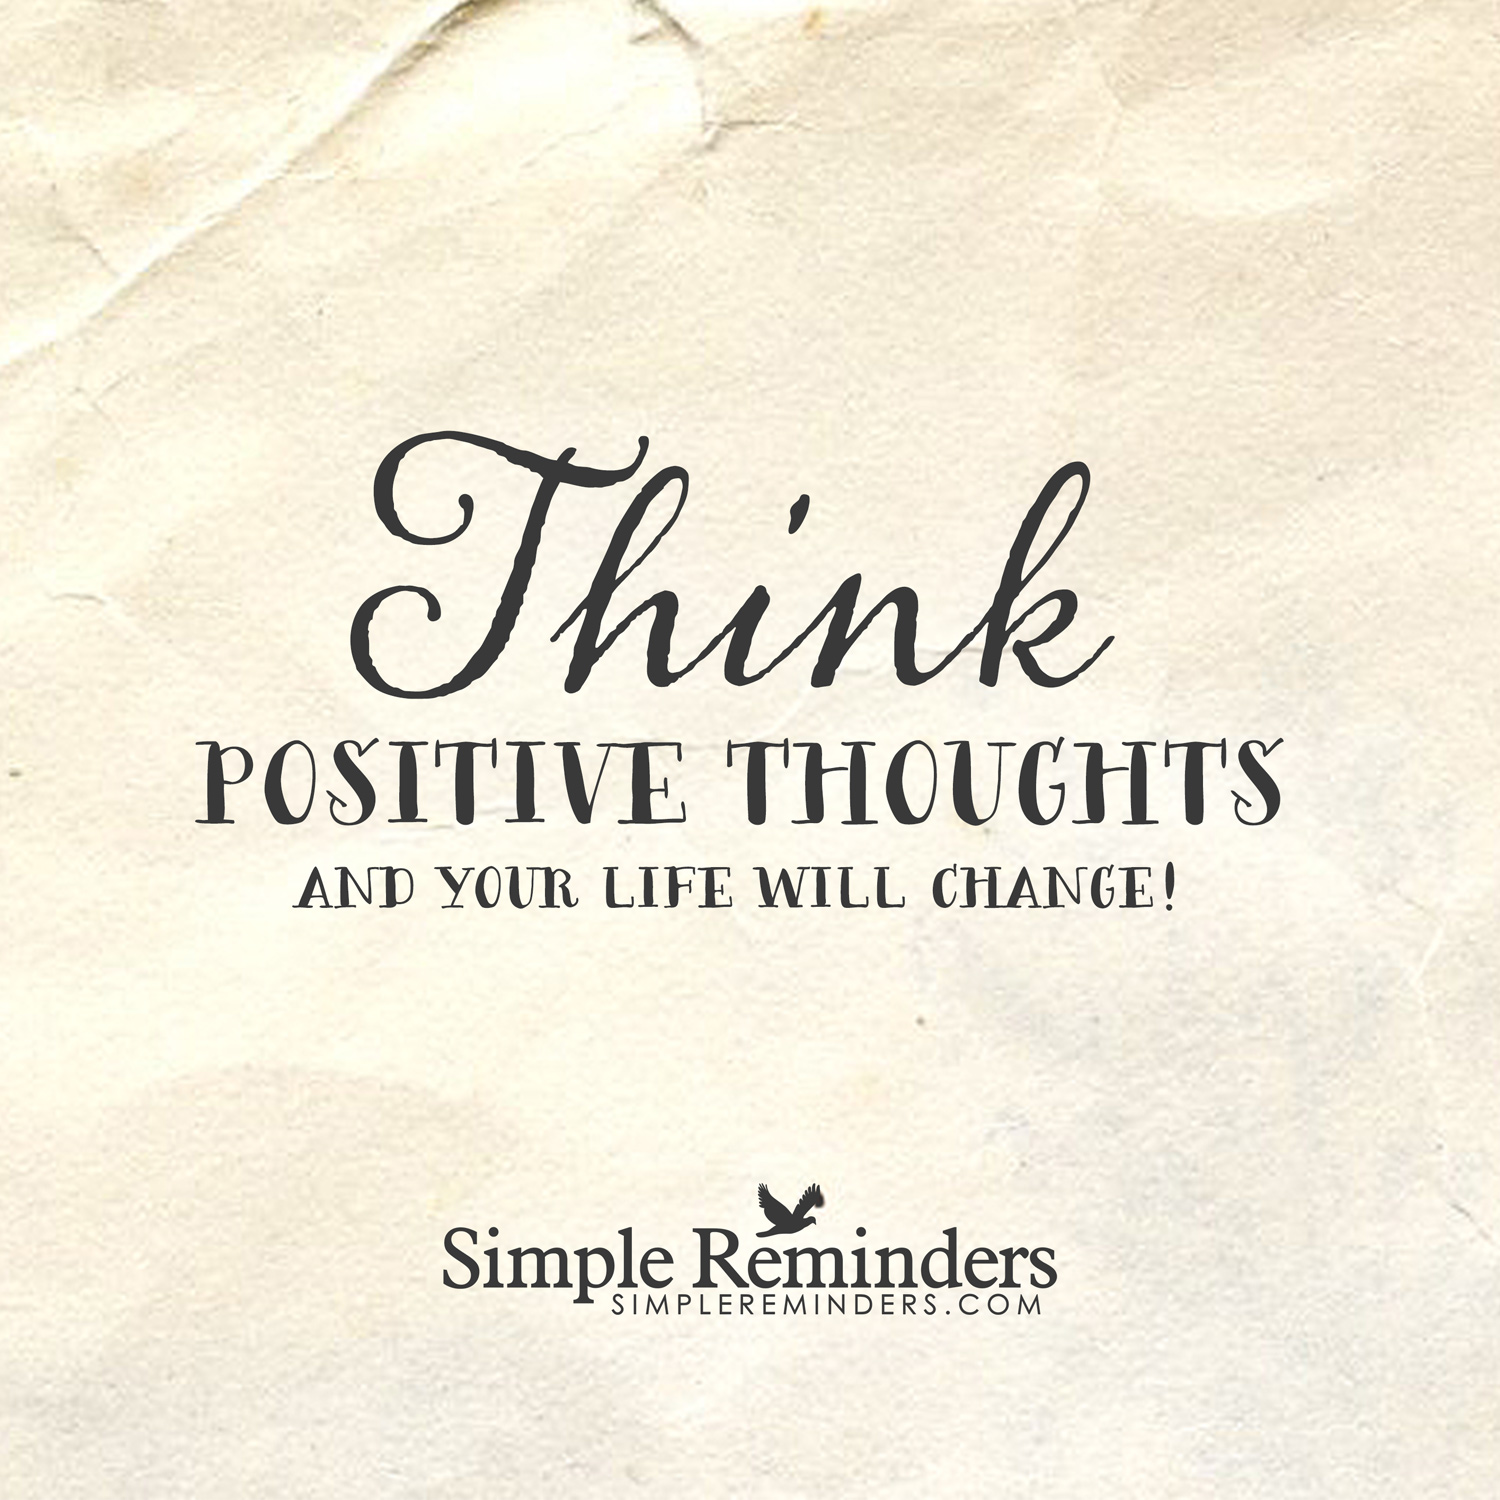 Have Positive Thoughts Quotes: Simple Reminders Quotes Images. QuotesGram